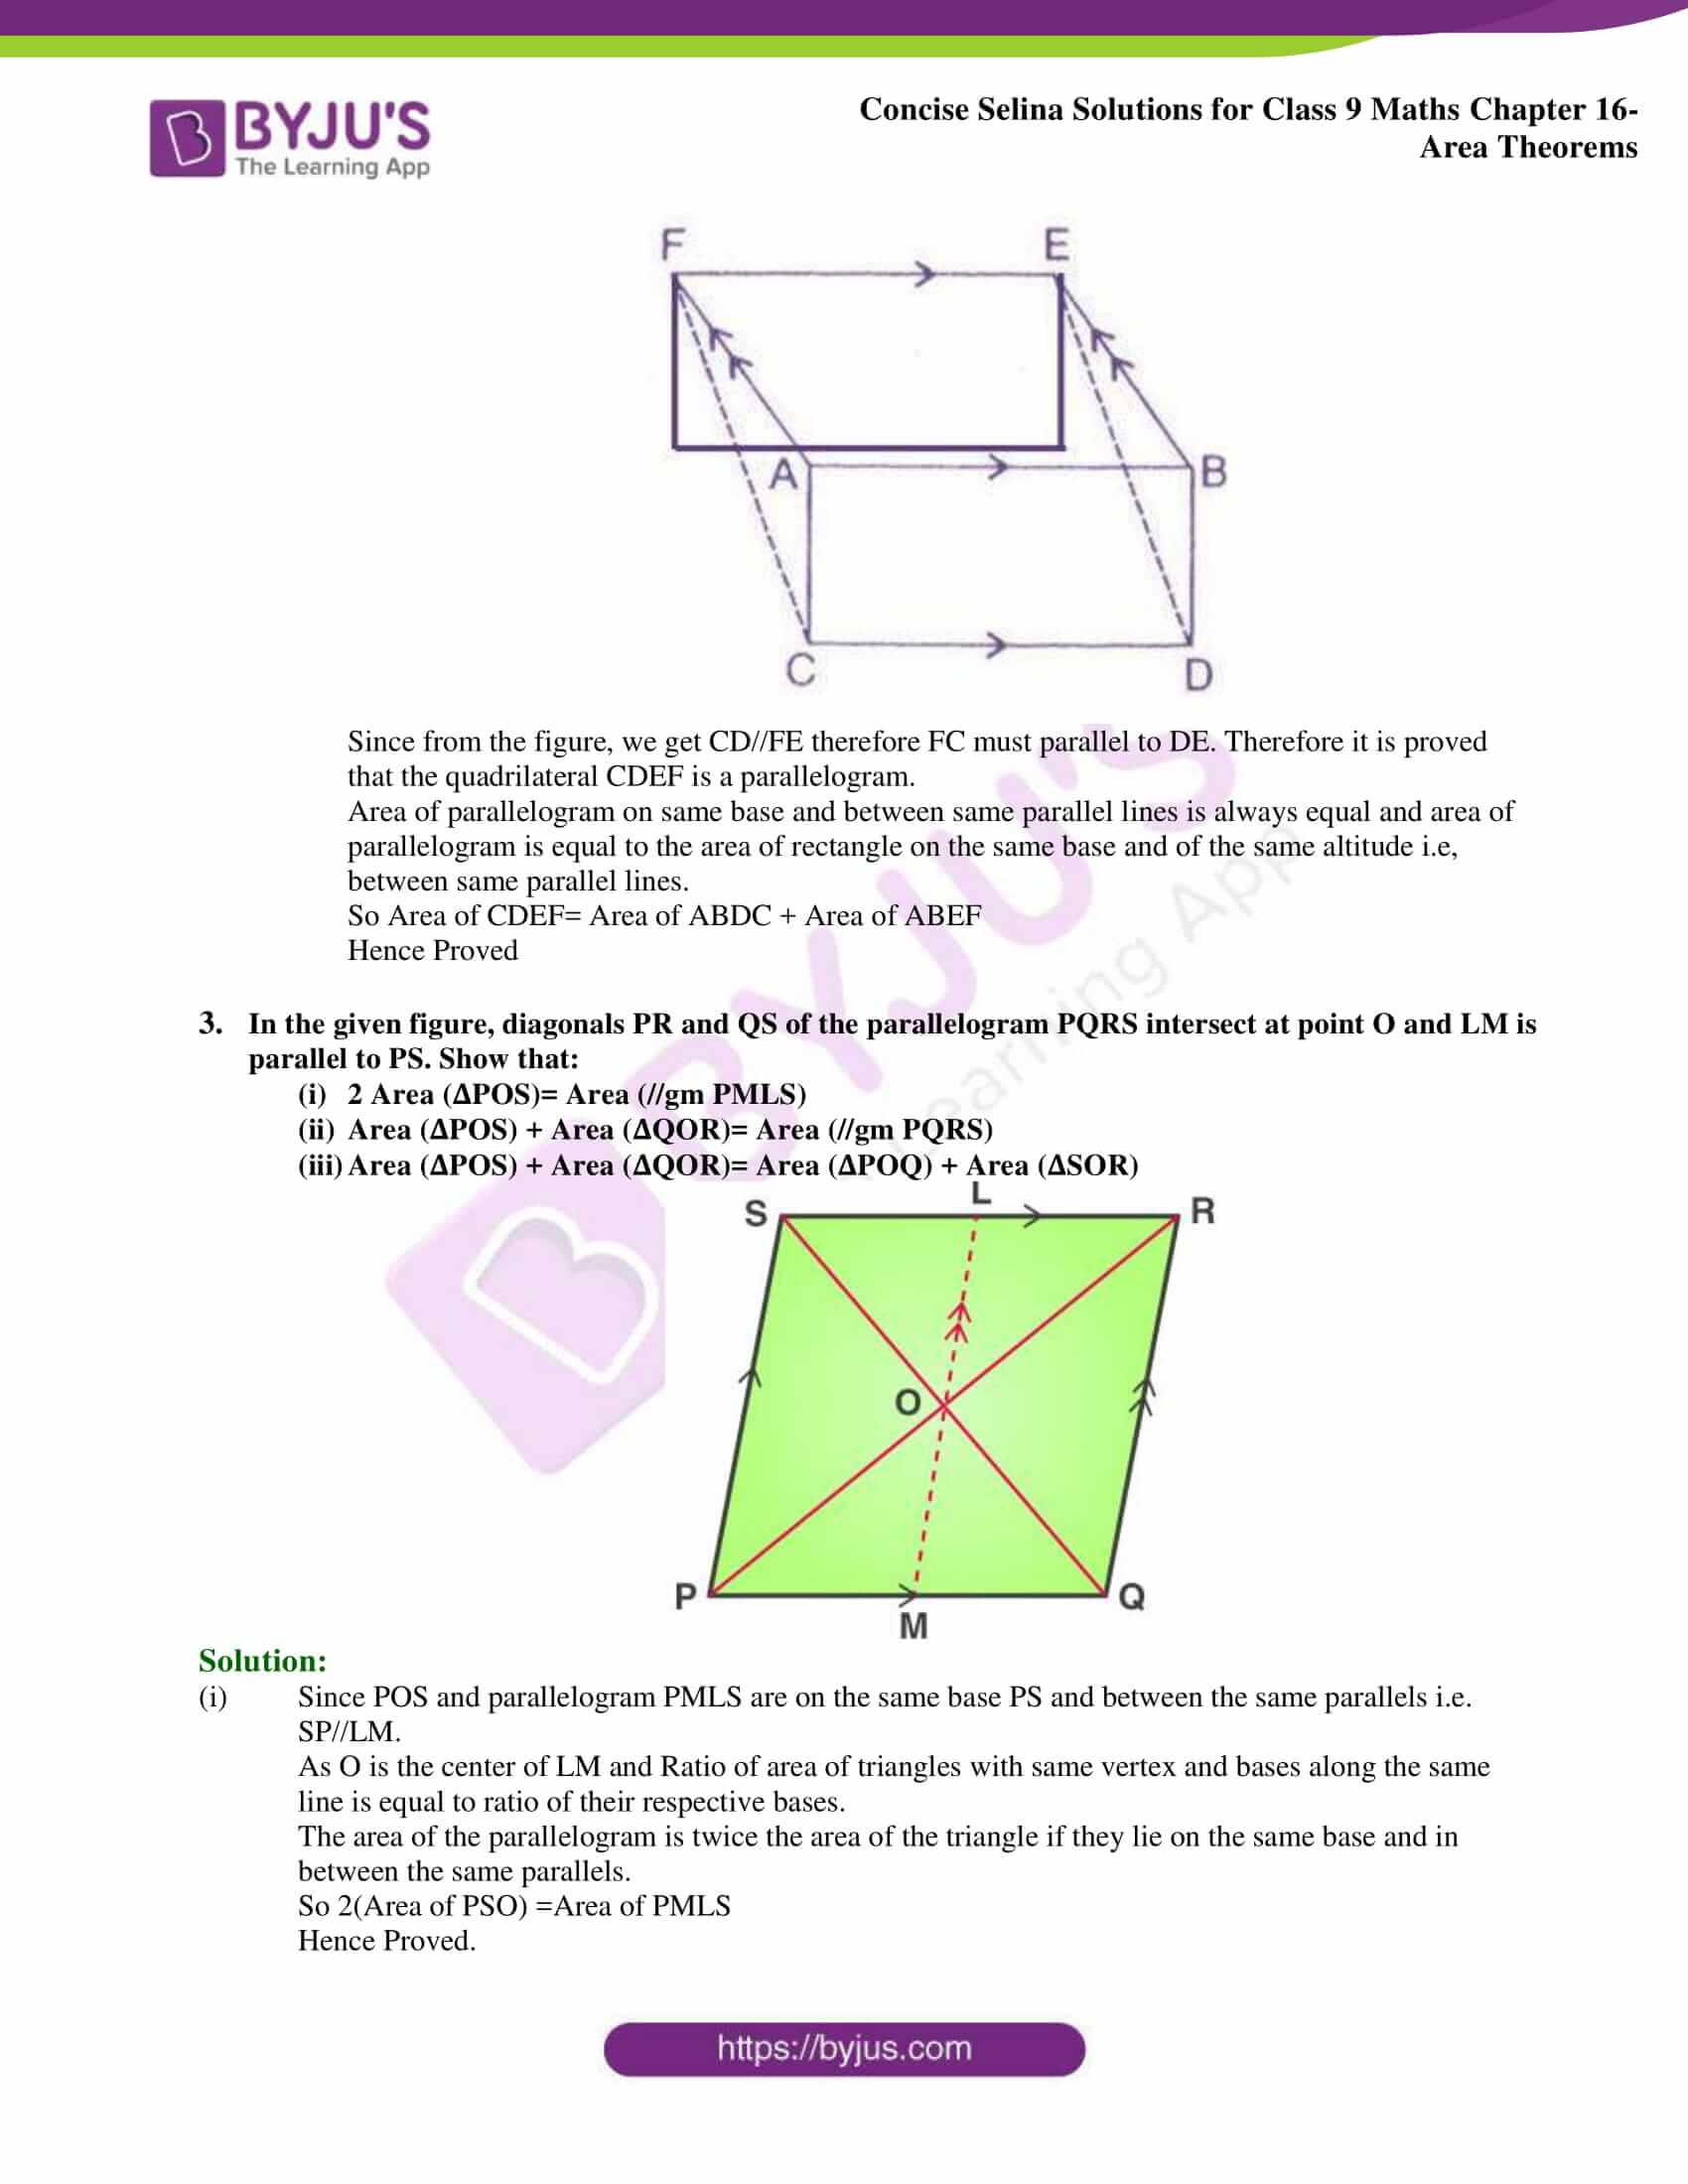 Concise Selina Solutions Class 9 Maths Chapter 16 Area Theorems part 02